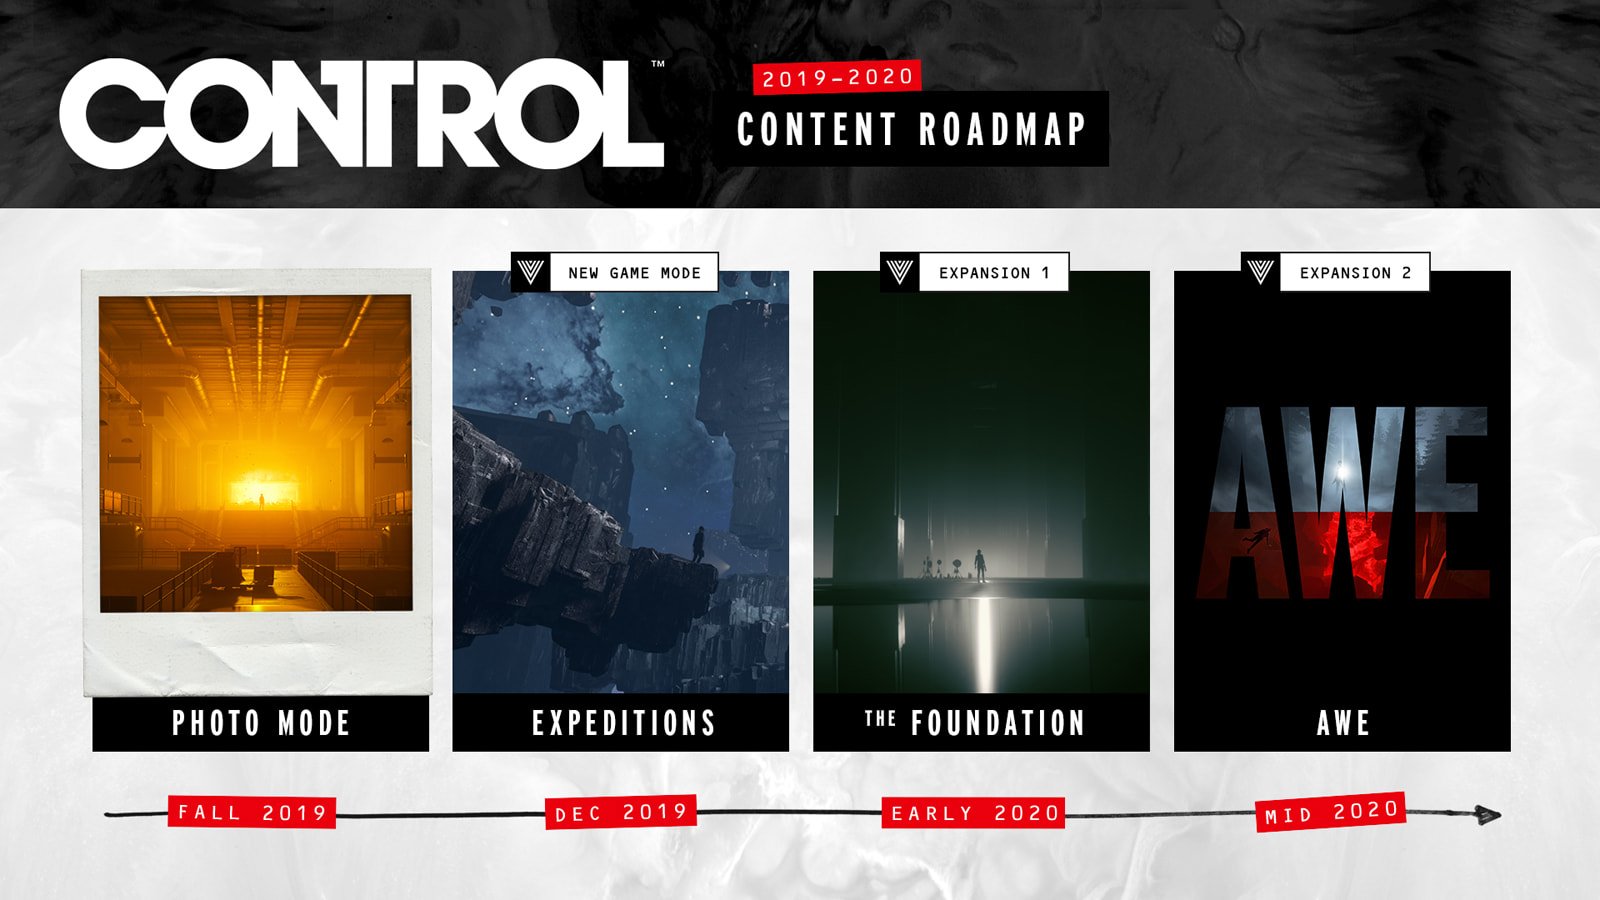 'Control' game roadmap